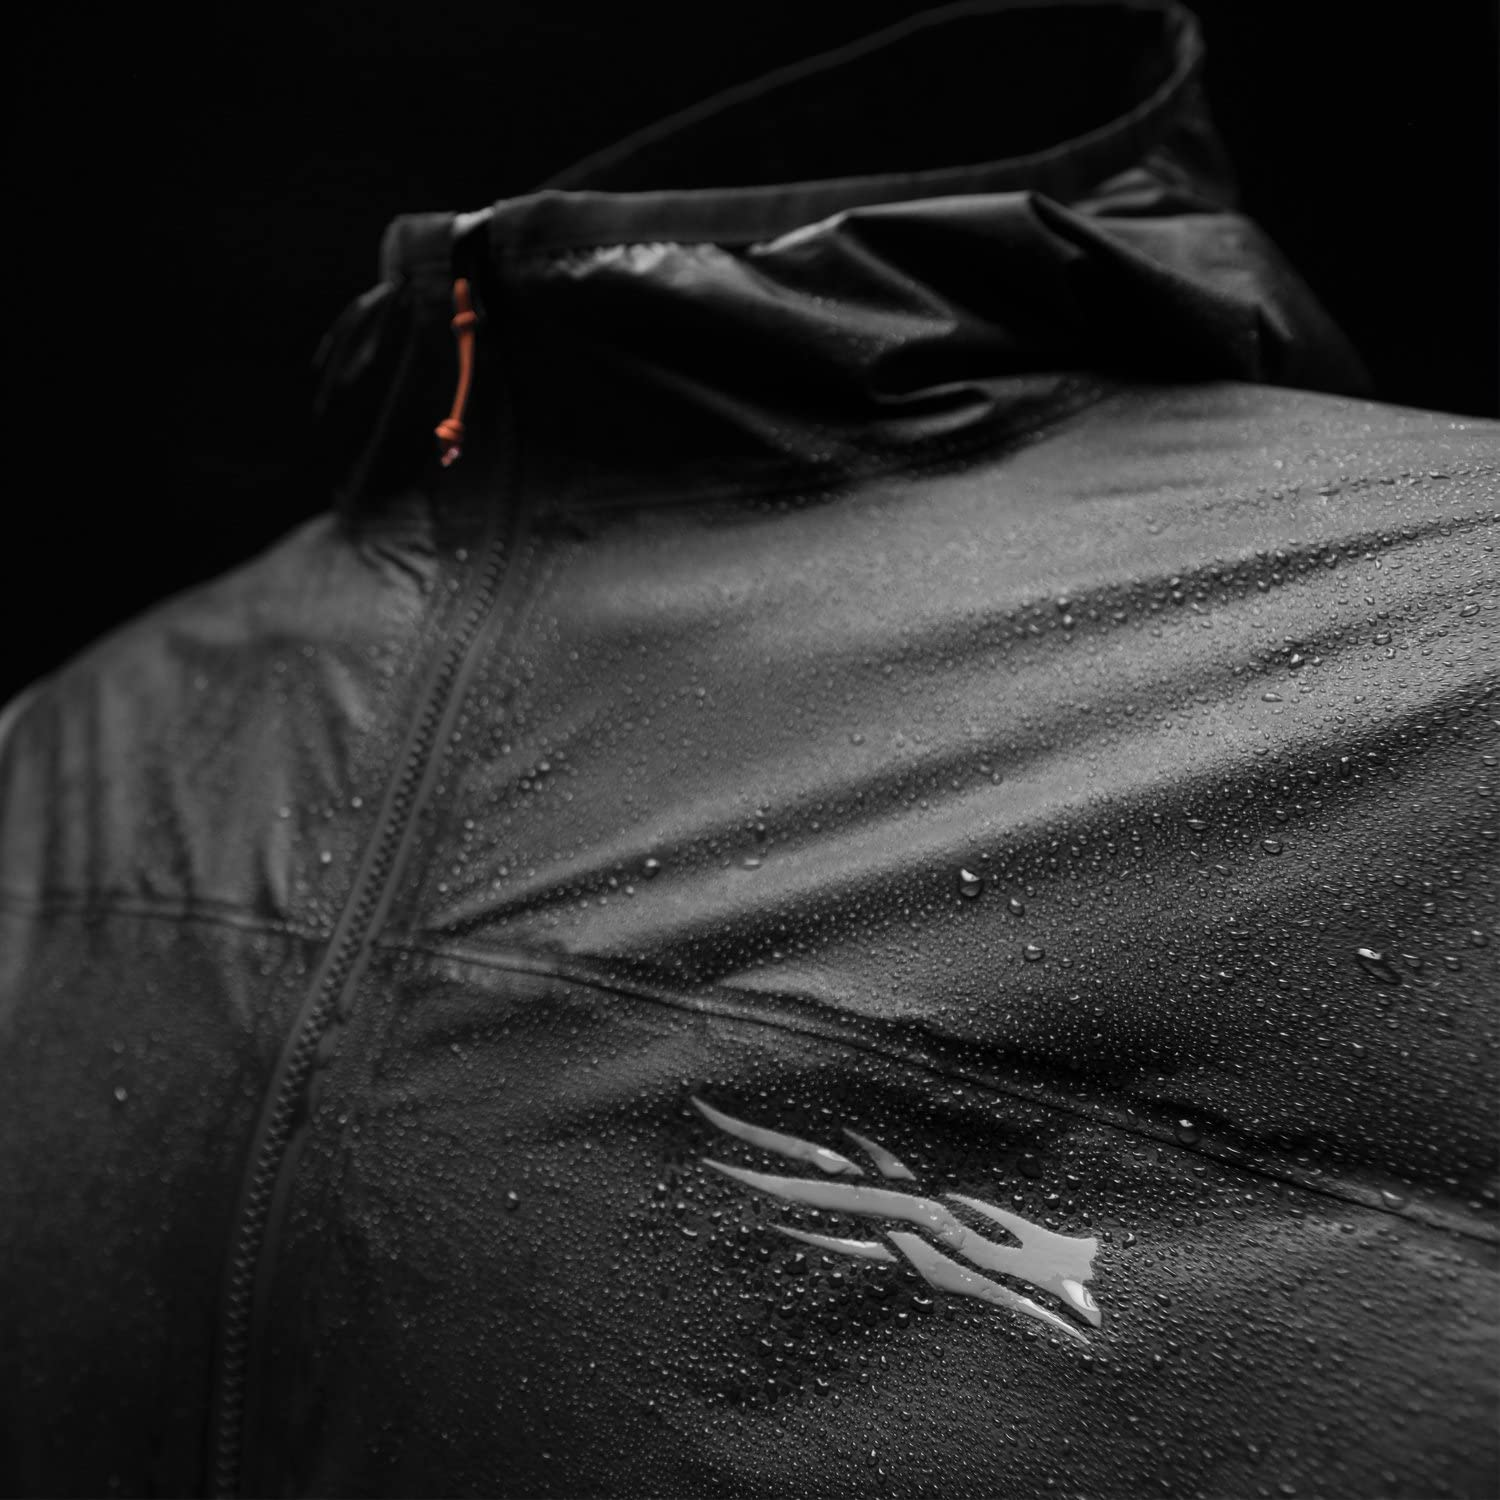 Sitka Gear Mens Packable Gore-Tex Waterproof Windproof Training Hooded Vapor SD Jacket, Black, XXL